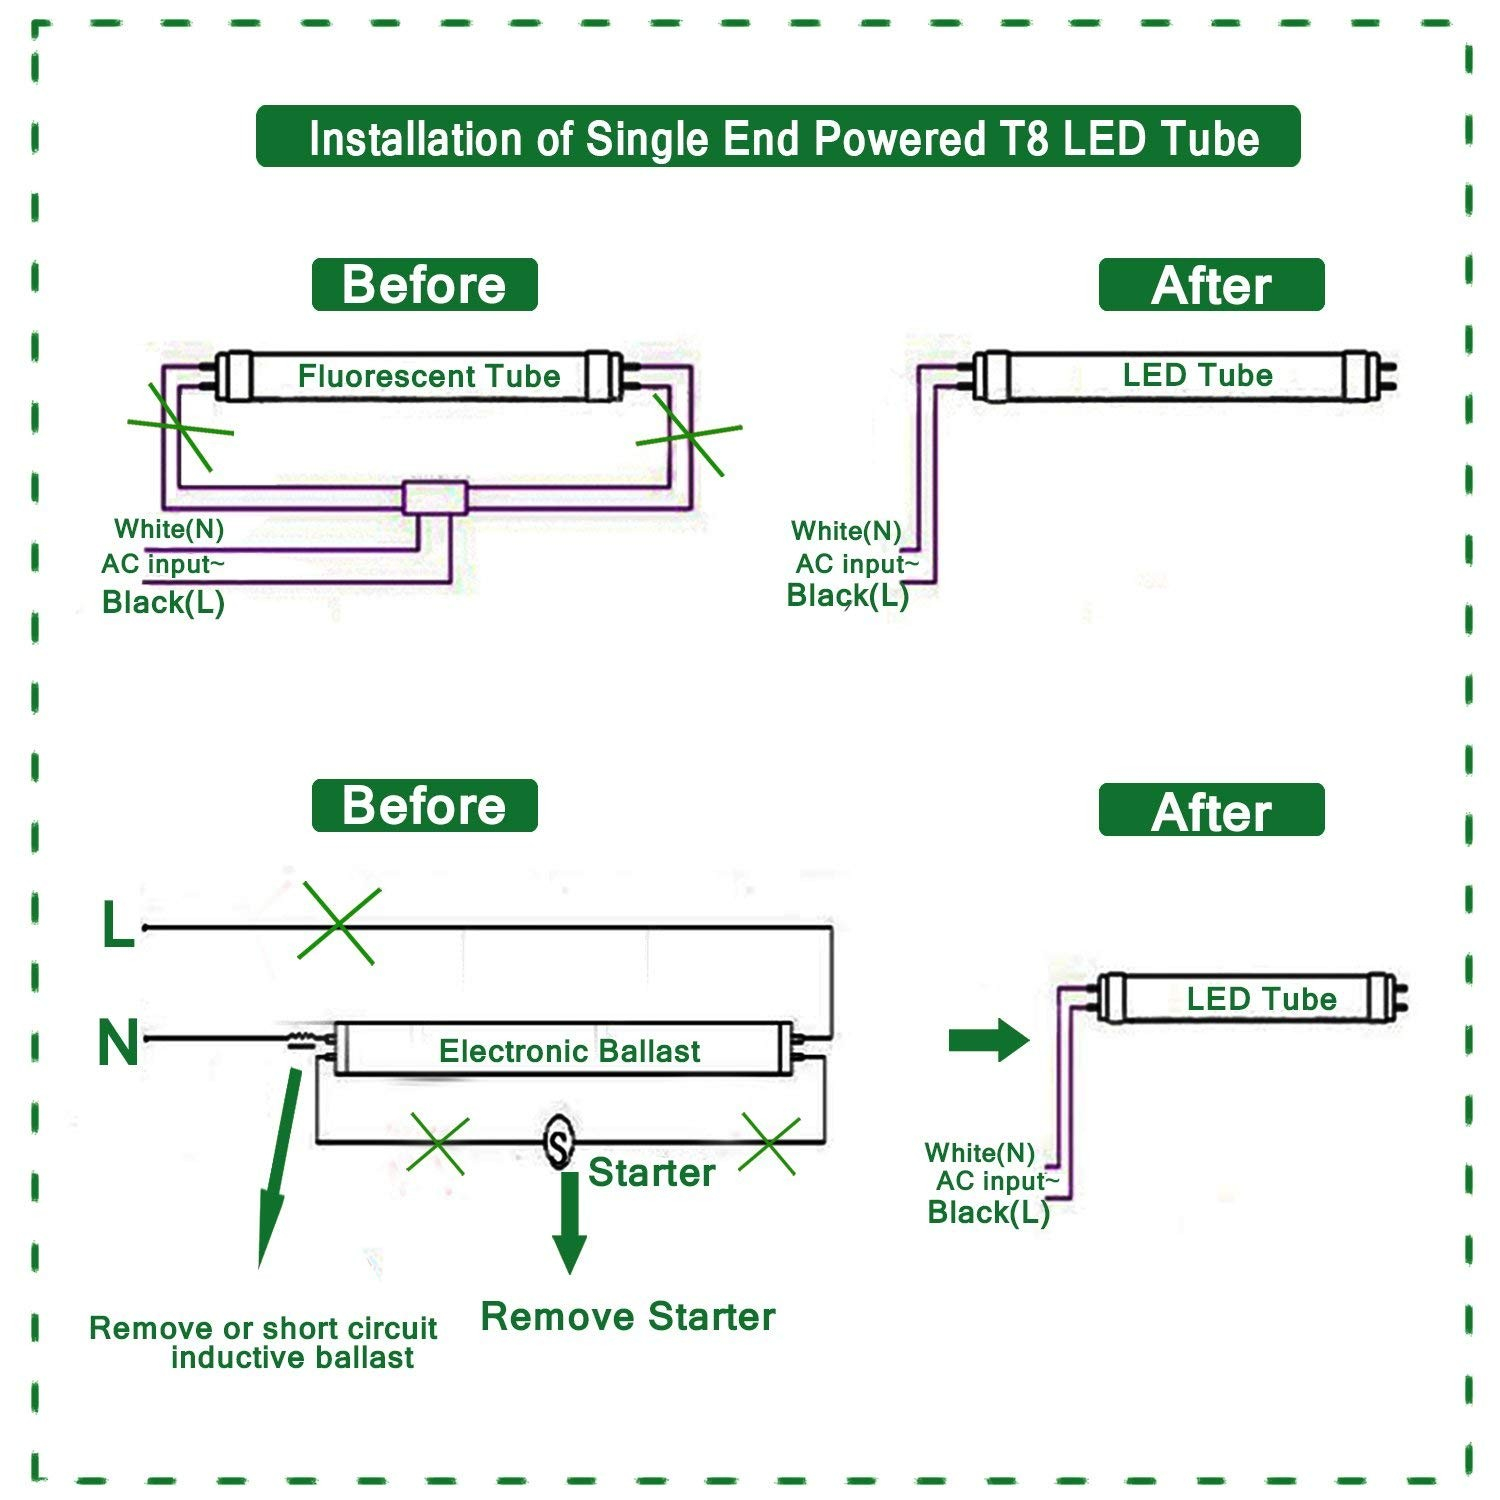 t8 led wiring diagram Download-Wiring Diagram Led Tube Philips Refrence T8 Led Tube Wiring Diagram Wiring Diagram 5-m